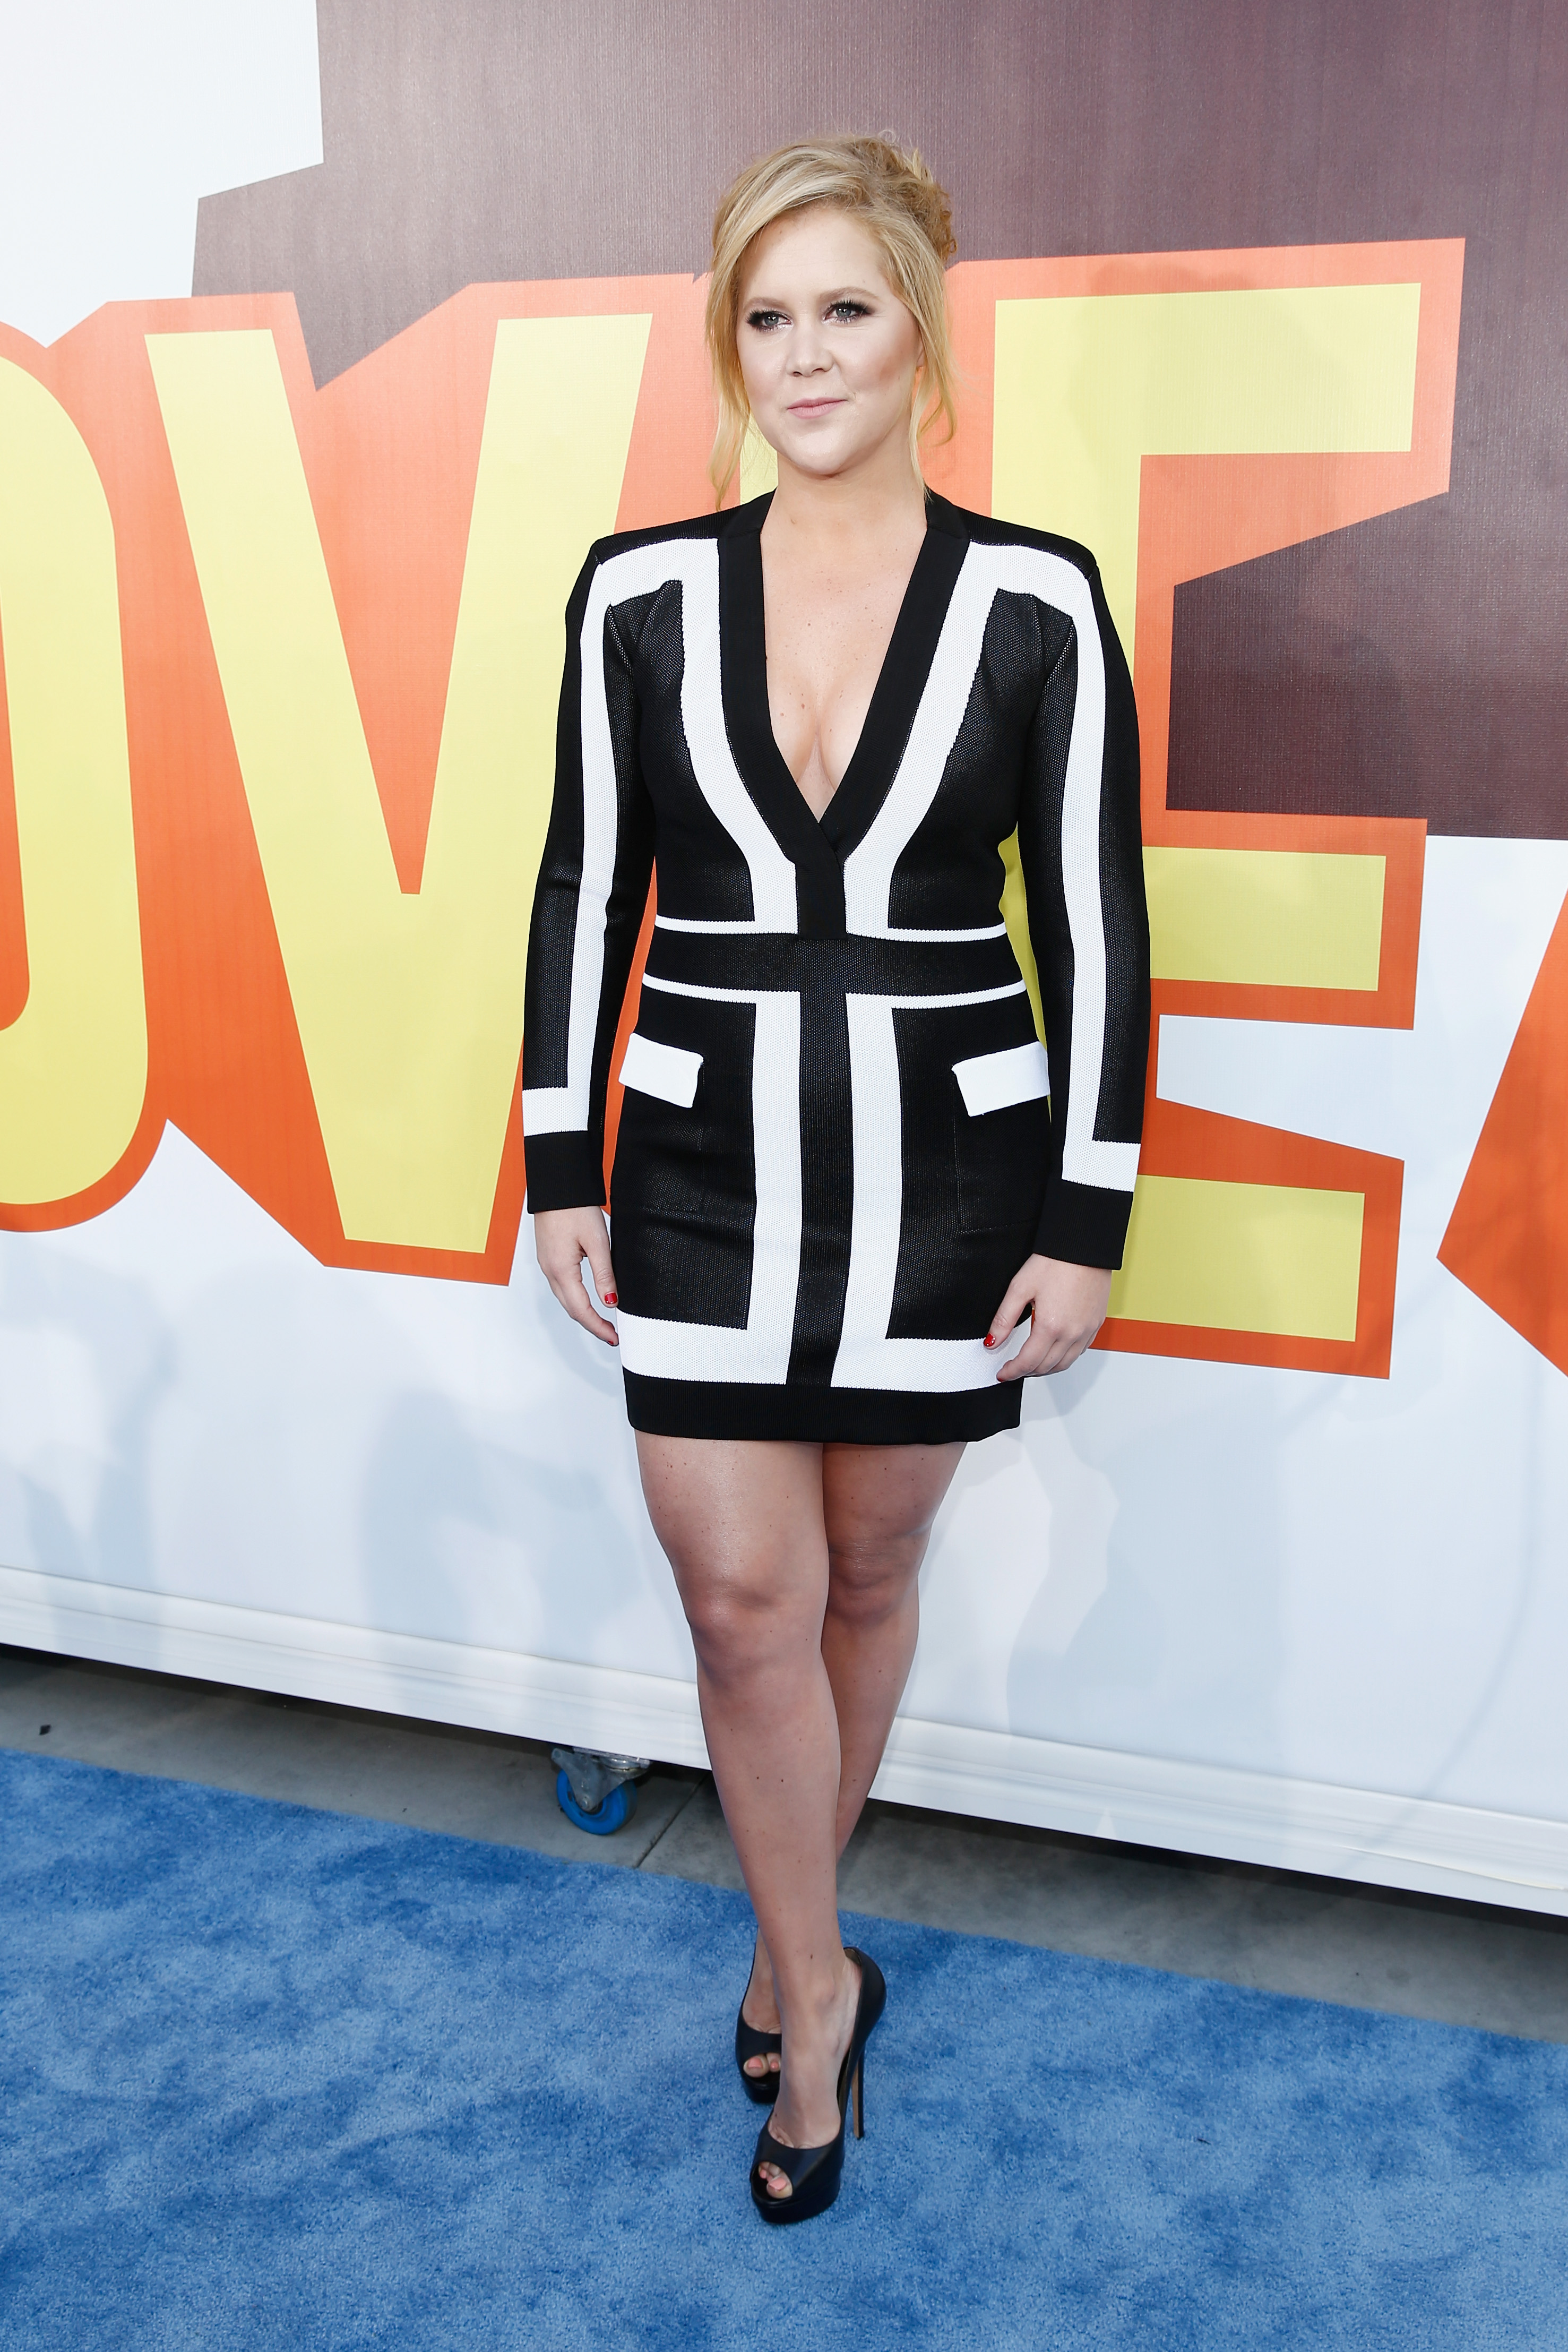 2015 MTV Movie Awards' top 10 fashion misses, starring Jennifer Lopez, Scarlett Johansson and Amber Rose [GALLERY]